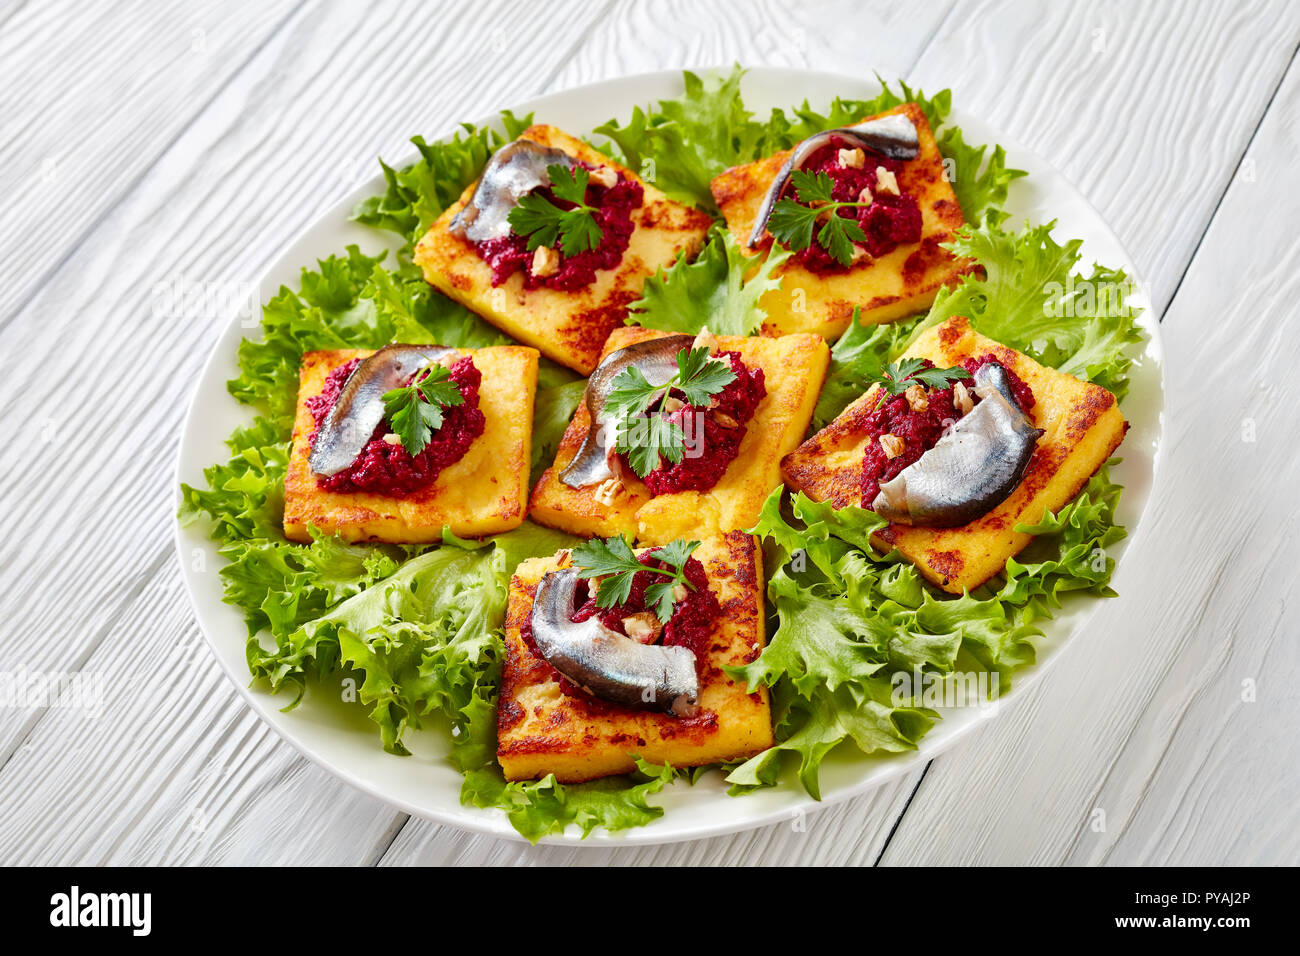 tasty Fried Polenta Squares with Creamy beetroot puree, topped with anchovies and garnished with fresh parsley on a white plate on a wooden table, hor - Stock Image